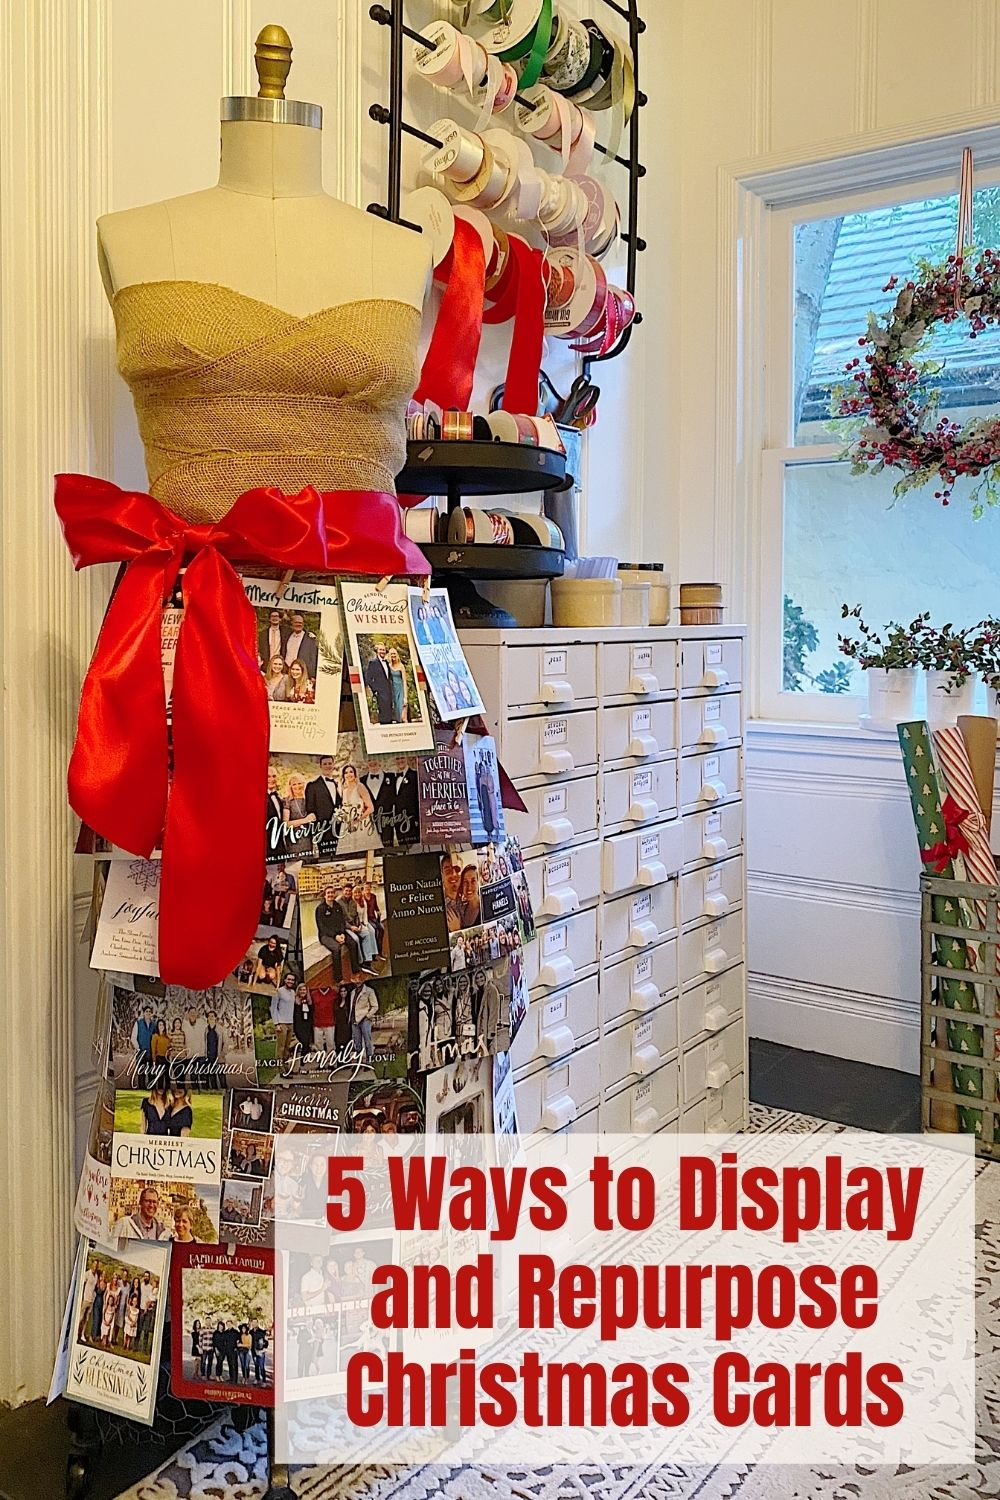 We get a lot of Christmas cards every year and I am very excited to share my ideas to display Christmas cards and use them for craft and gift ideas.